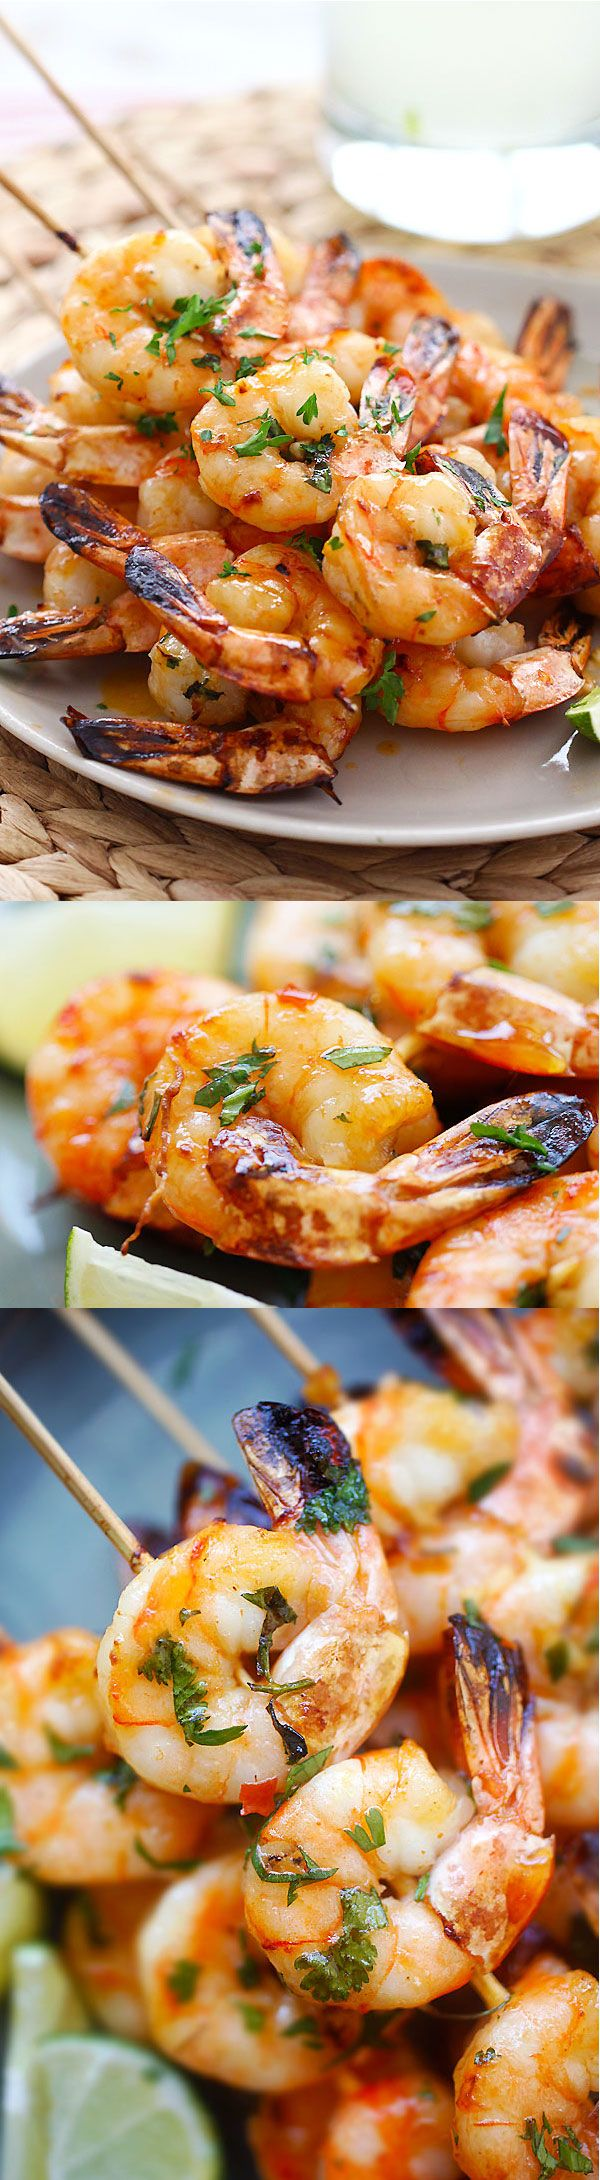 Honey Sriracha Shrimp Kebab – crazy delicious shrimp kebab with honey Sriracha butter. Thread shrimp on skewers and grill, so easy!! | rasamalaysia.com